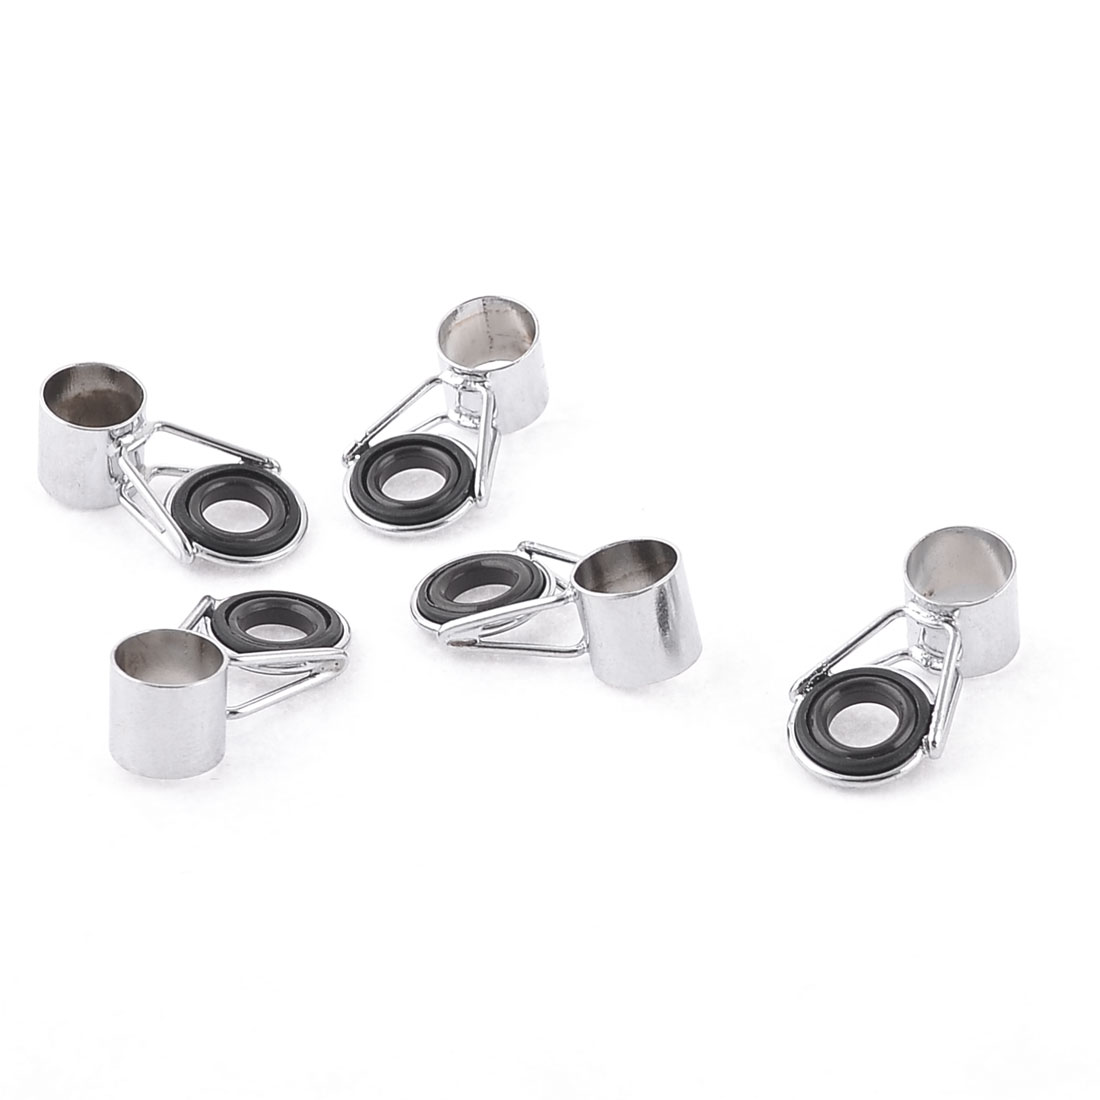 5 PCS 9.5mm Connector Inside Dia Fishing Rod Ring Eye Guide Tip